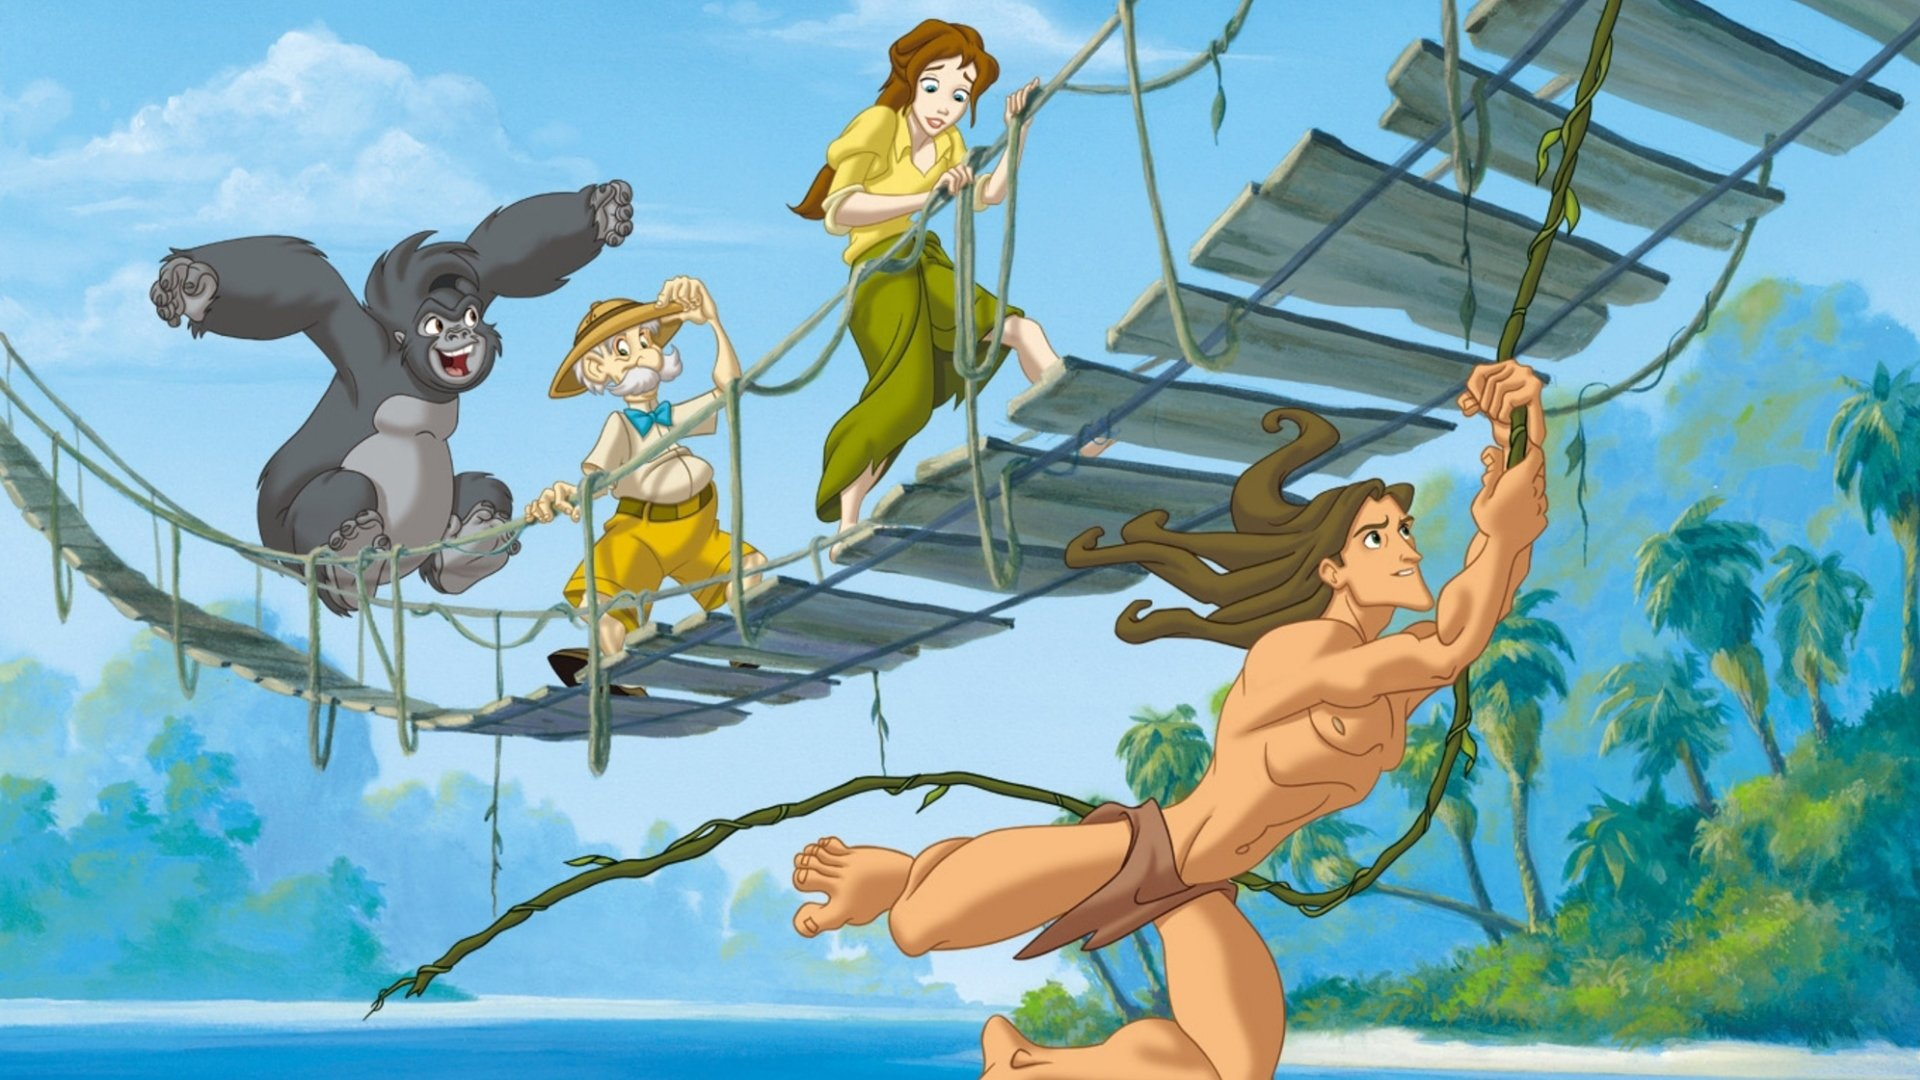 Tarzan jane 2002 for Professor archimedes q porter